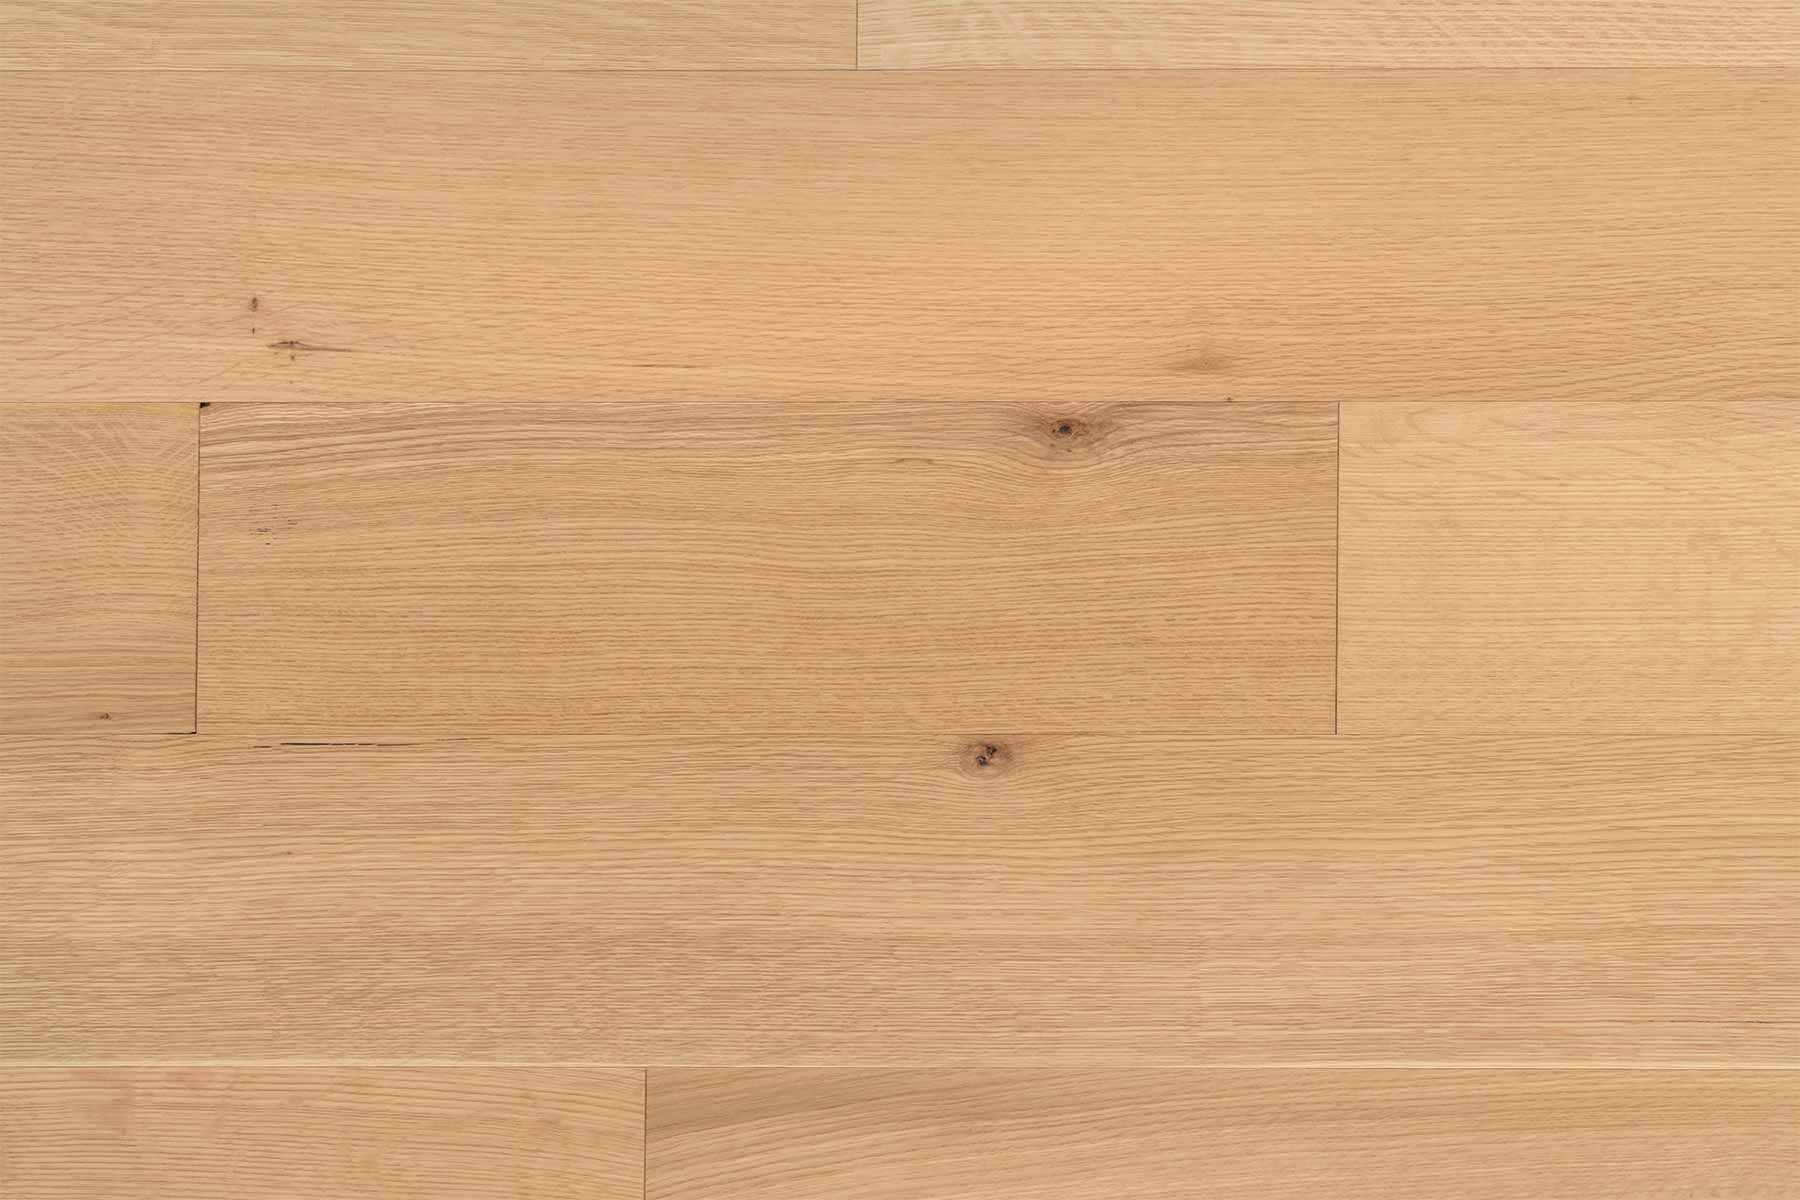 Distressed Hardwood Flooring Home Depot Of Handscraped Engineered Hardwood Awesome Engineered Wood Flooring Intended for Gallery Of Handscraped Engineered Hardwood